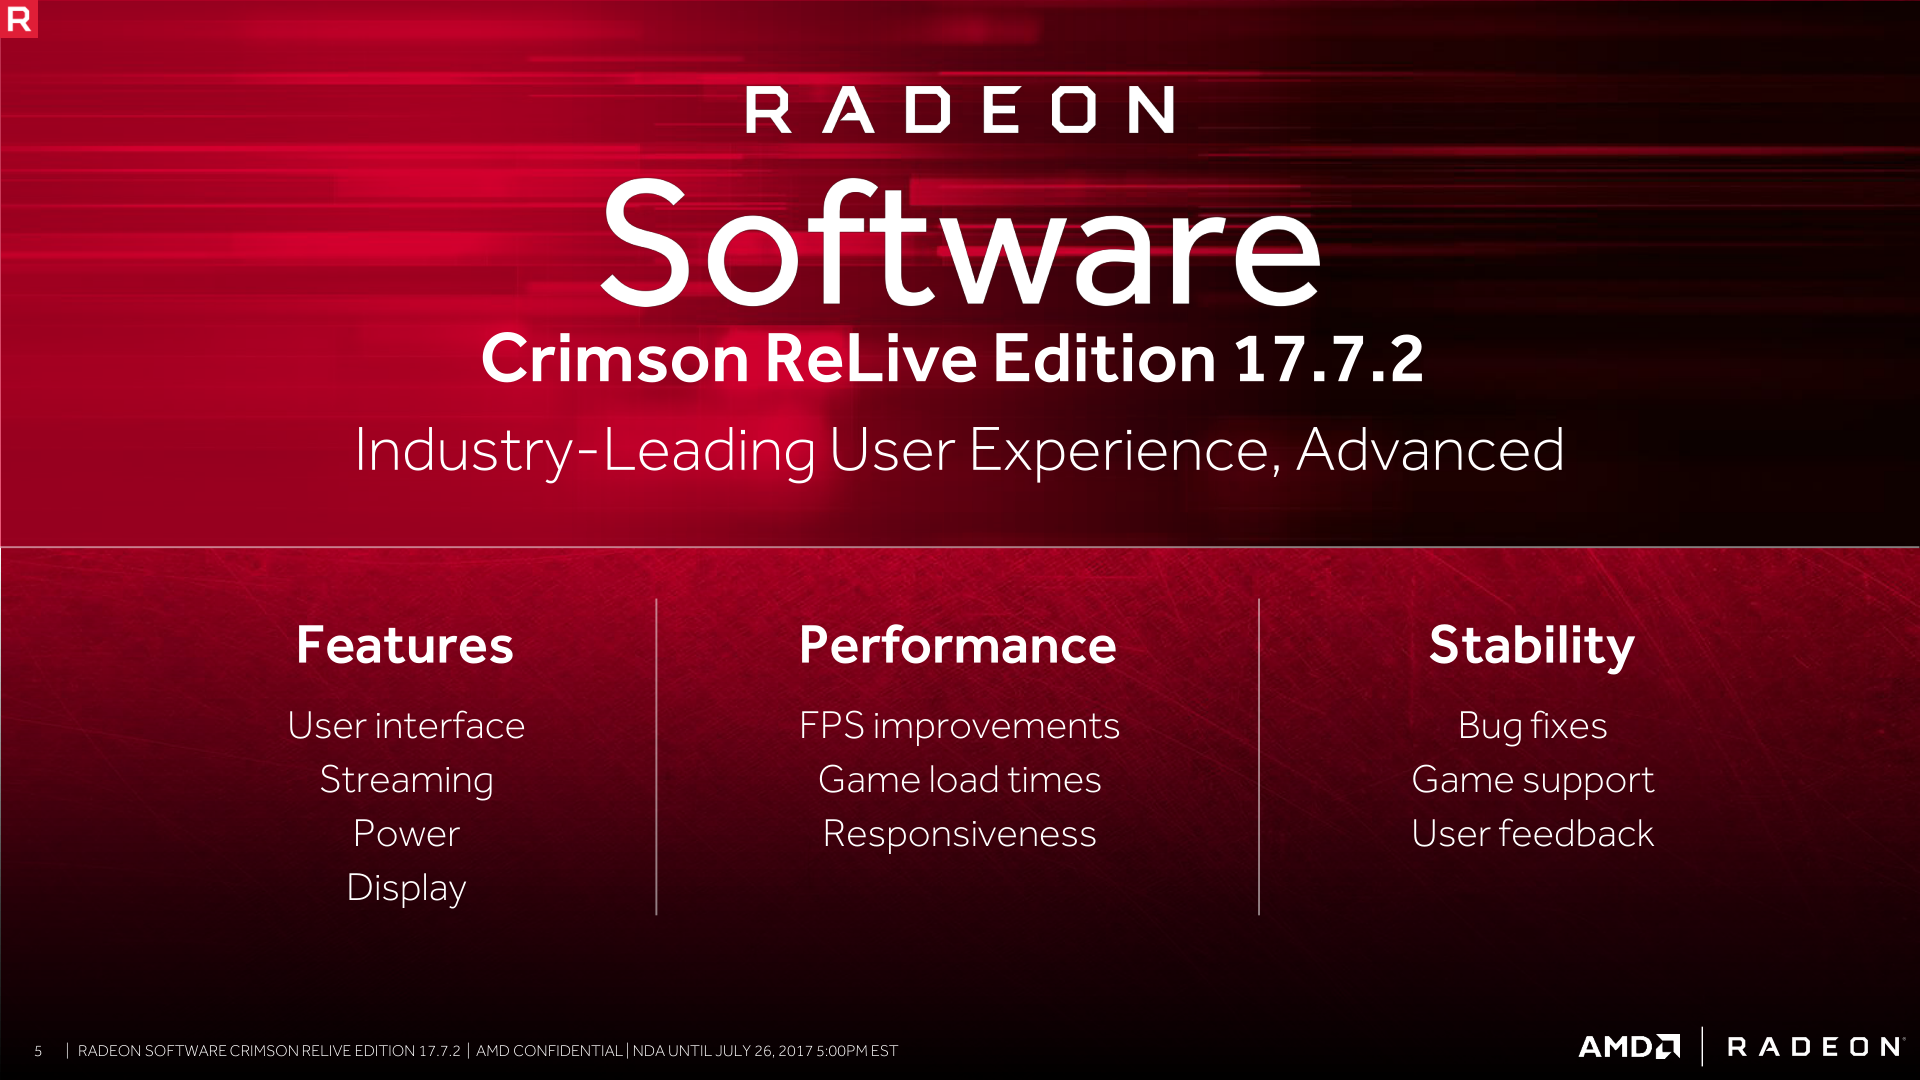 Amd relive download free | Radeon Software Crimson ReLive Edition